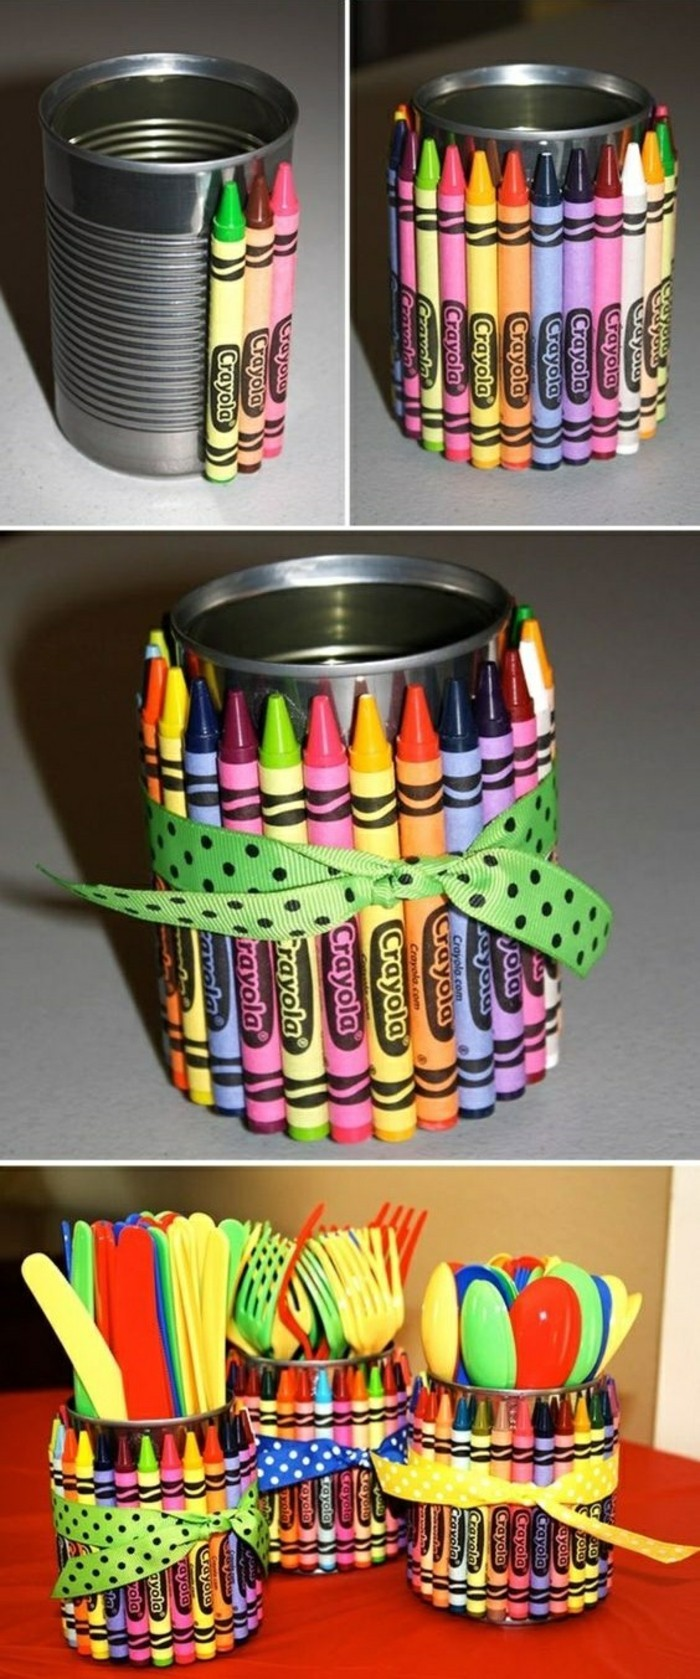 tin cans, aluminium cans decorated with colored crayons, tied with green ribbon with black polkadots, containing plastic cutlery in different colors